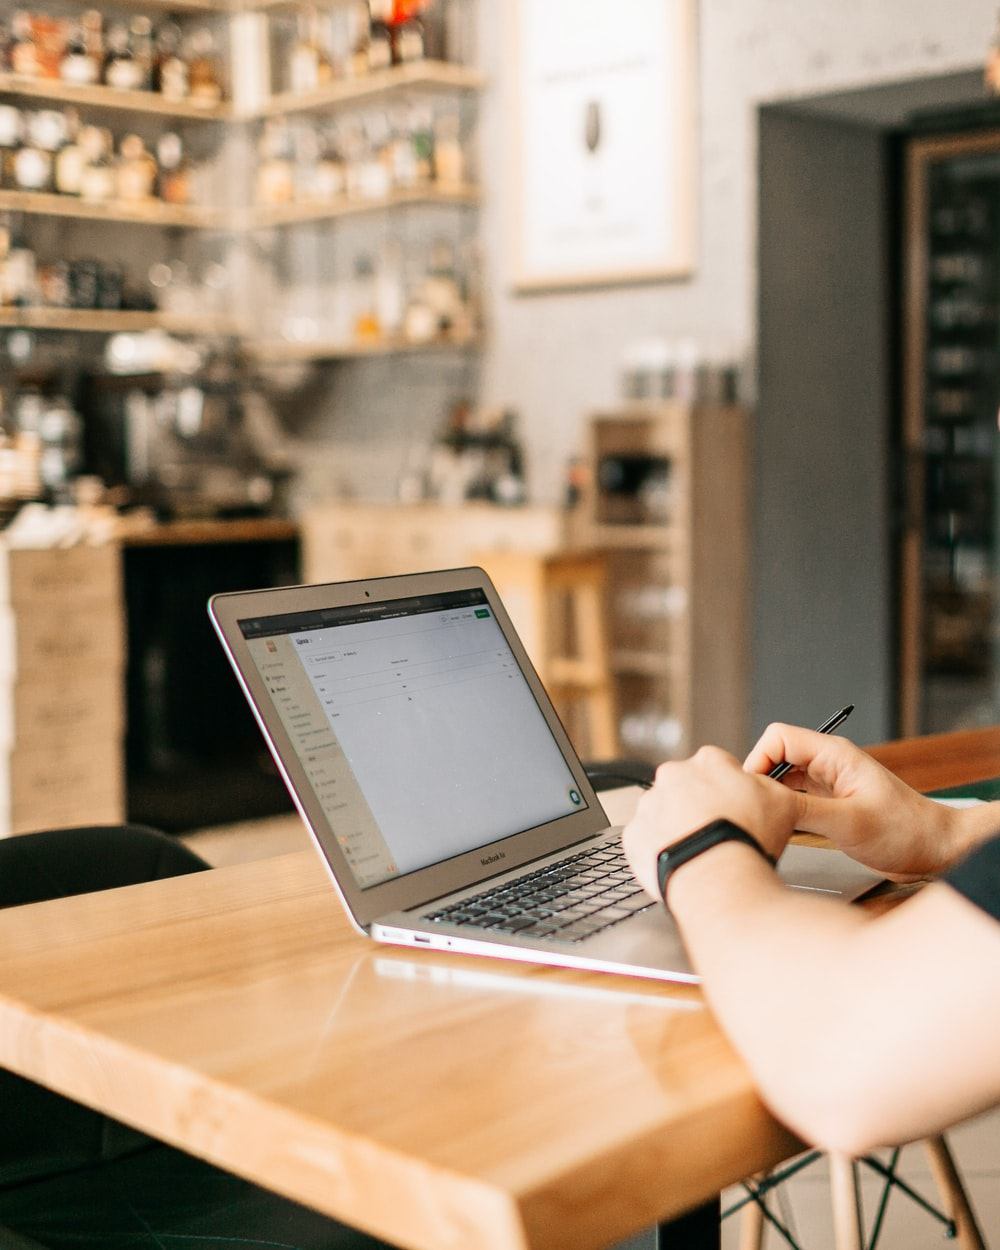 person using macbook air on brown wooden table